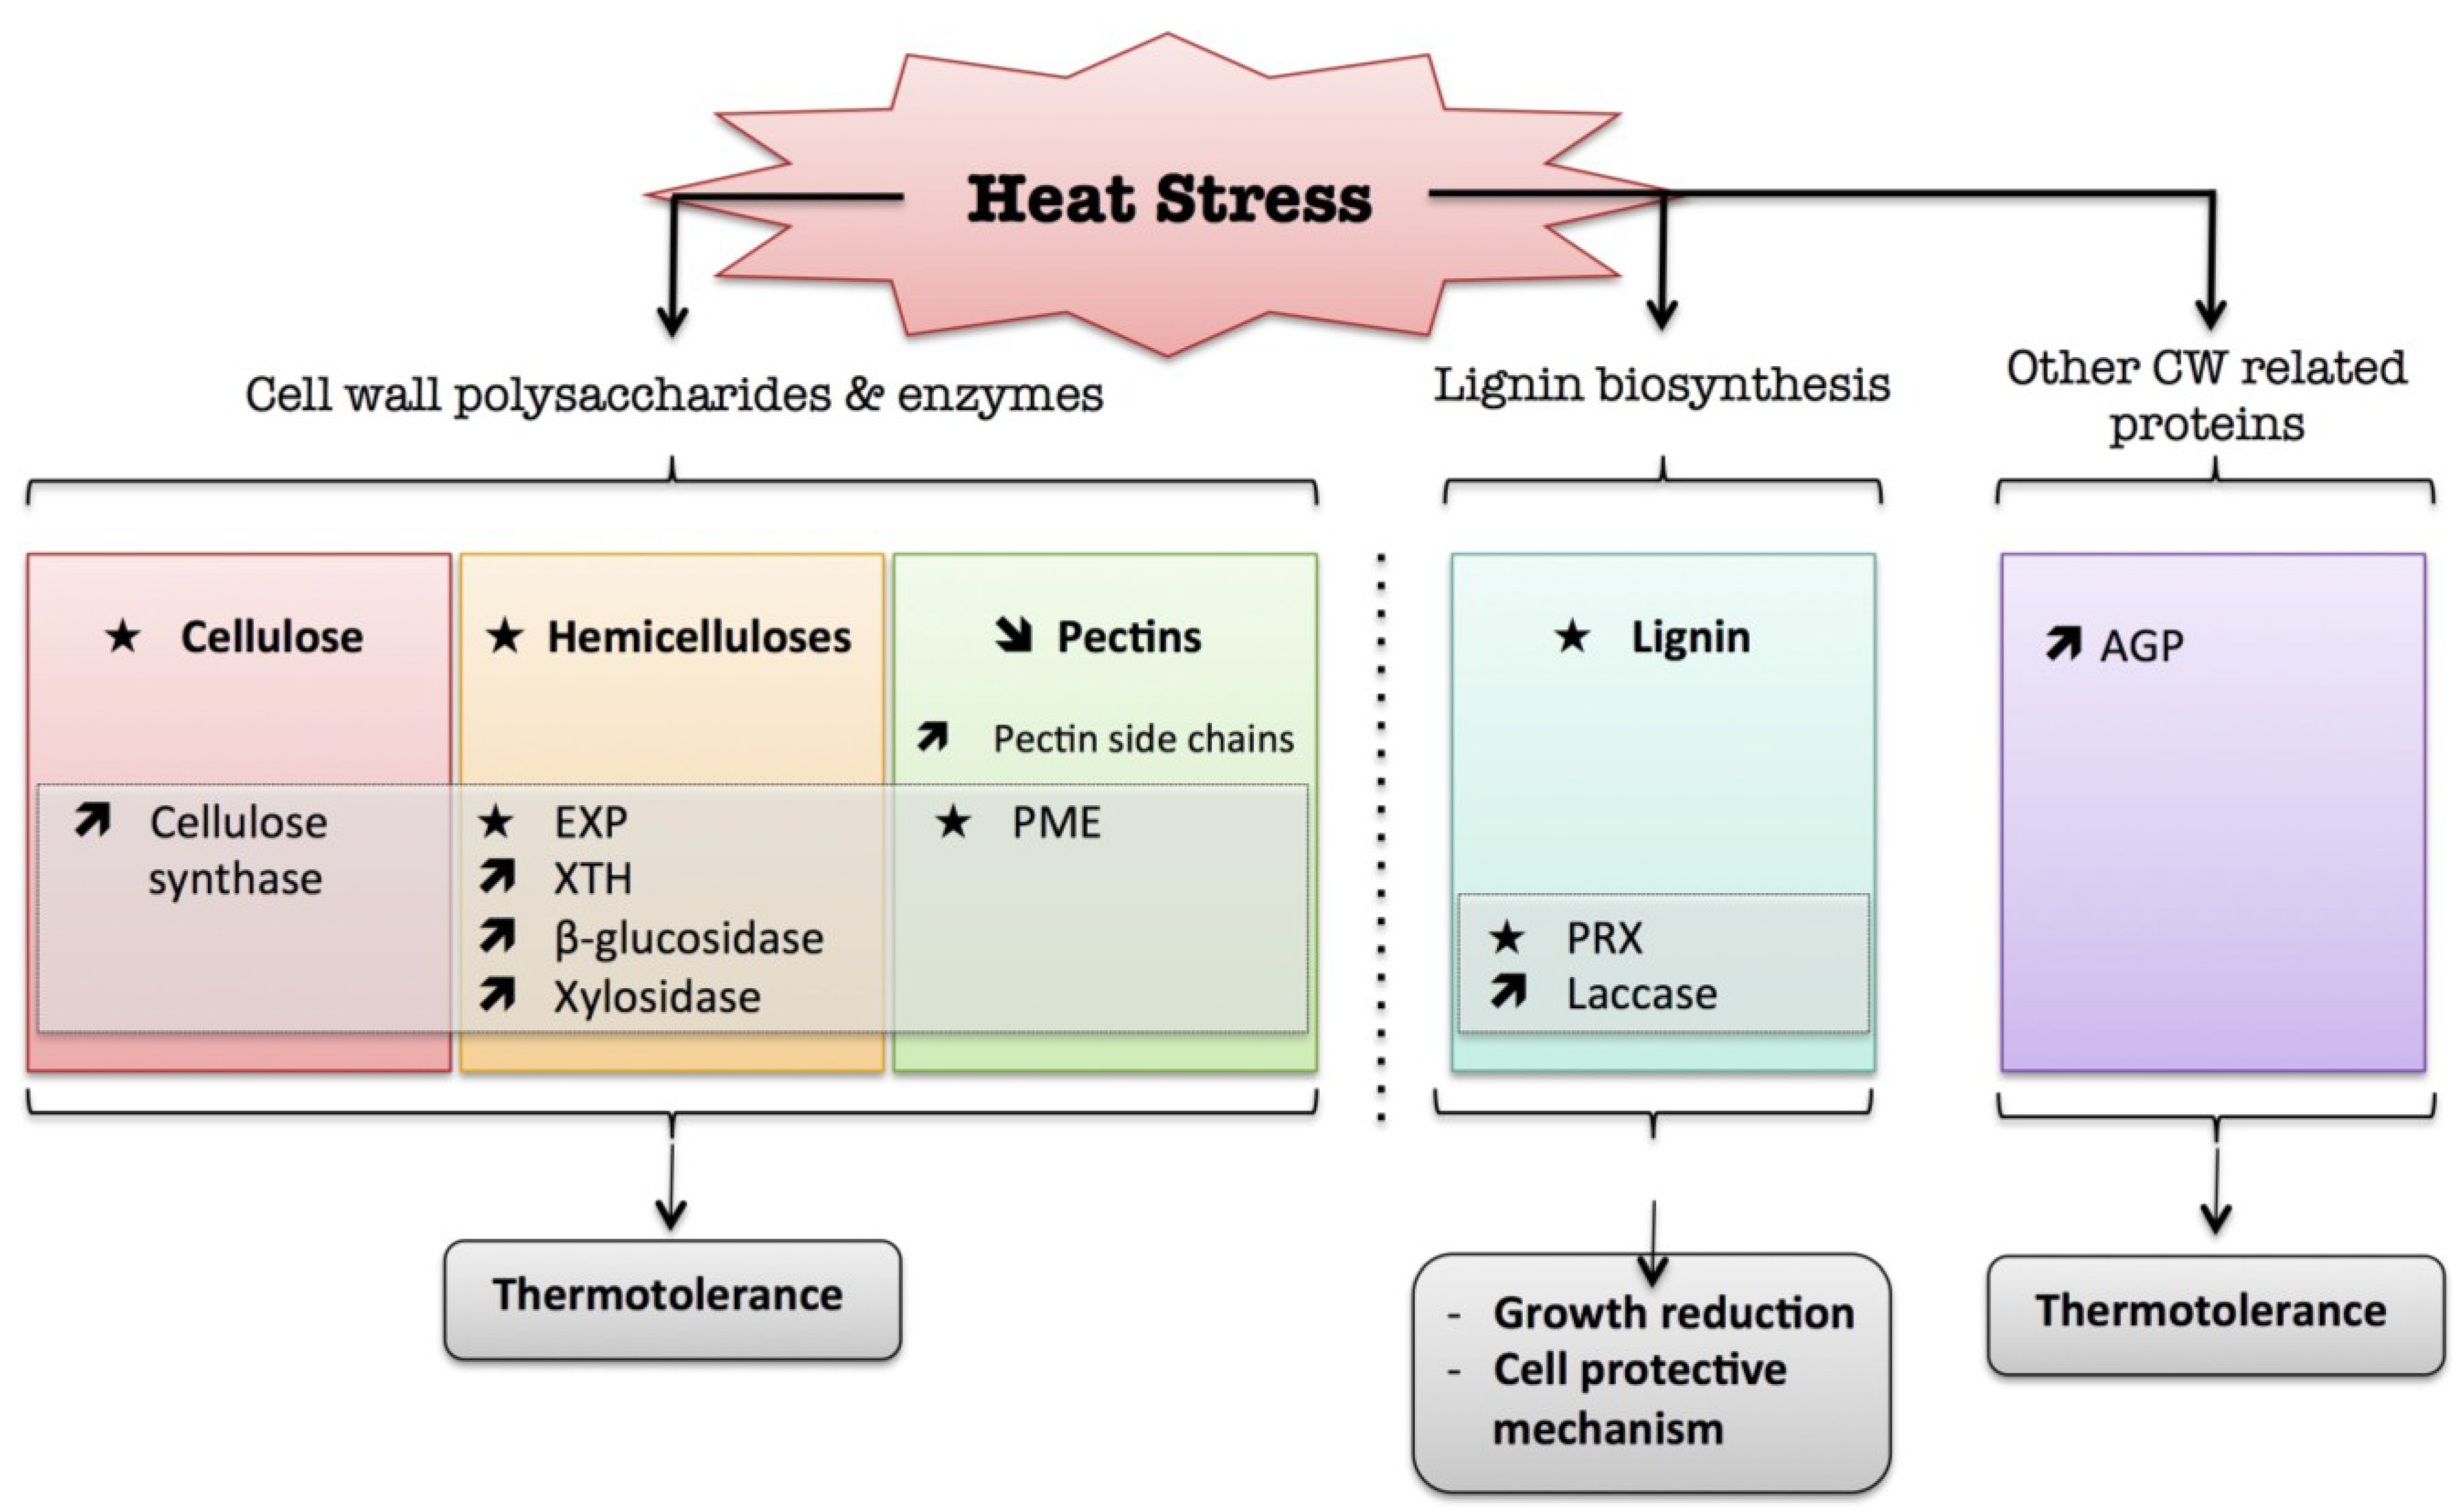 Chilling stress and its effect in plants.